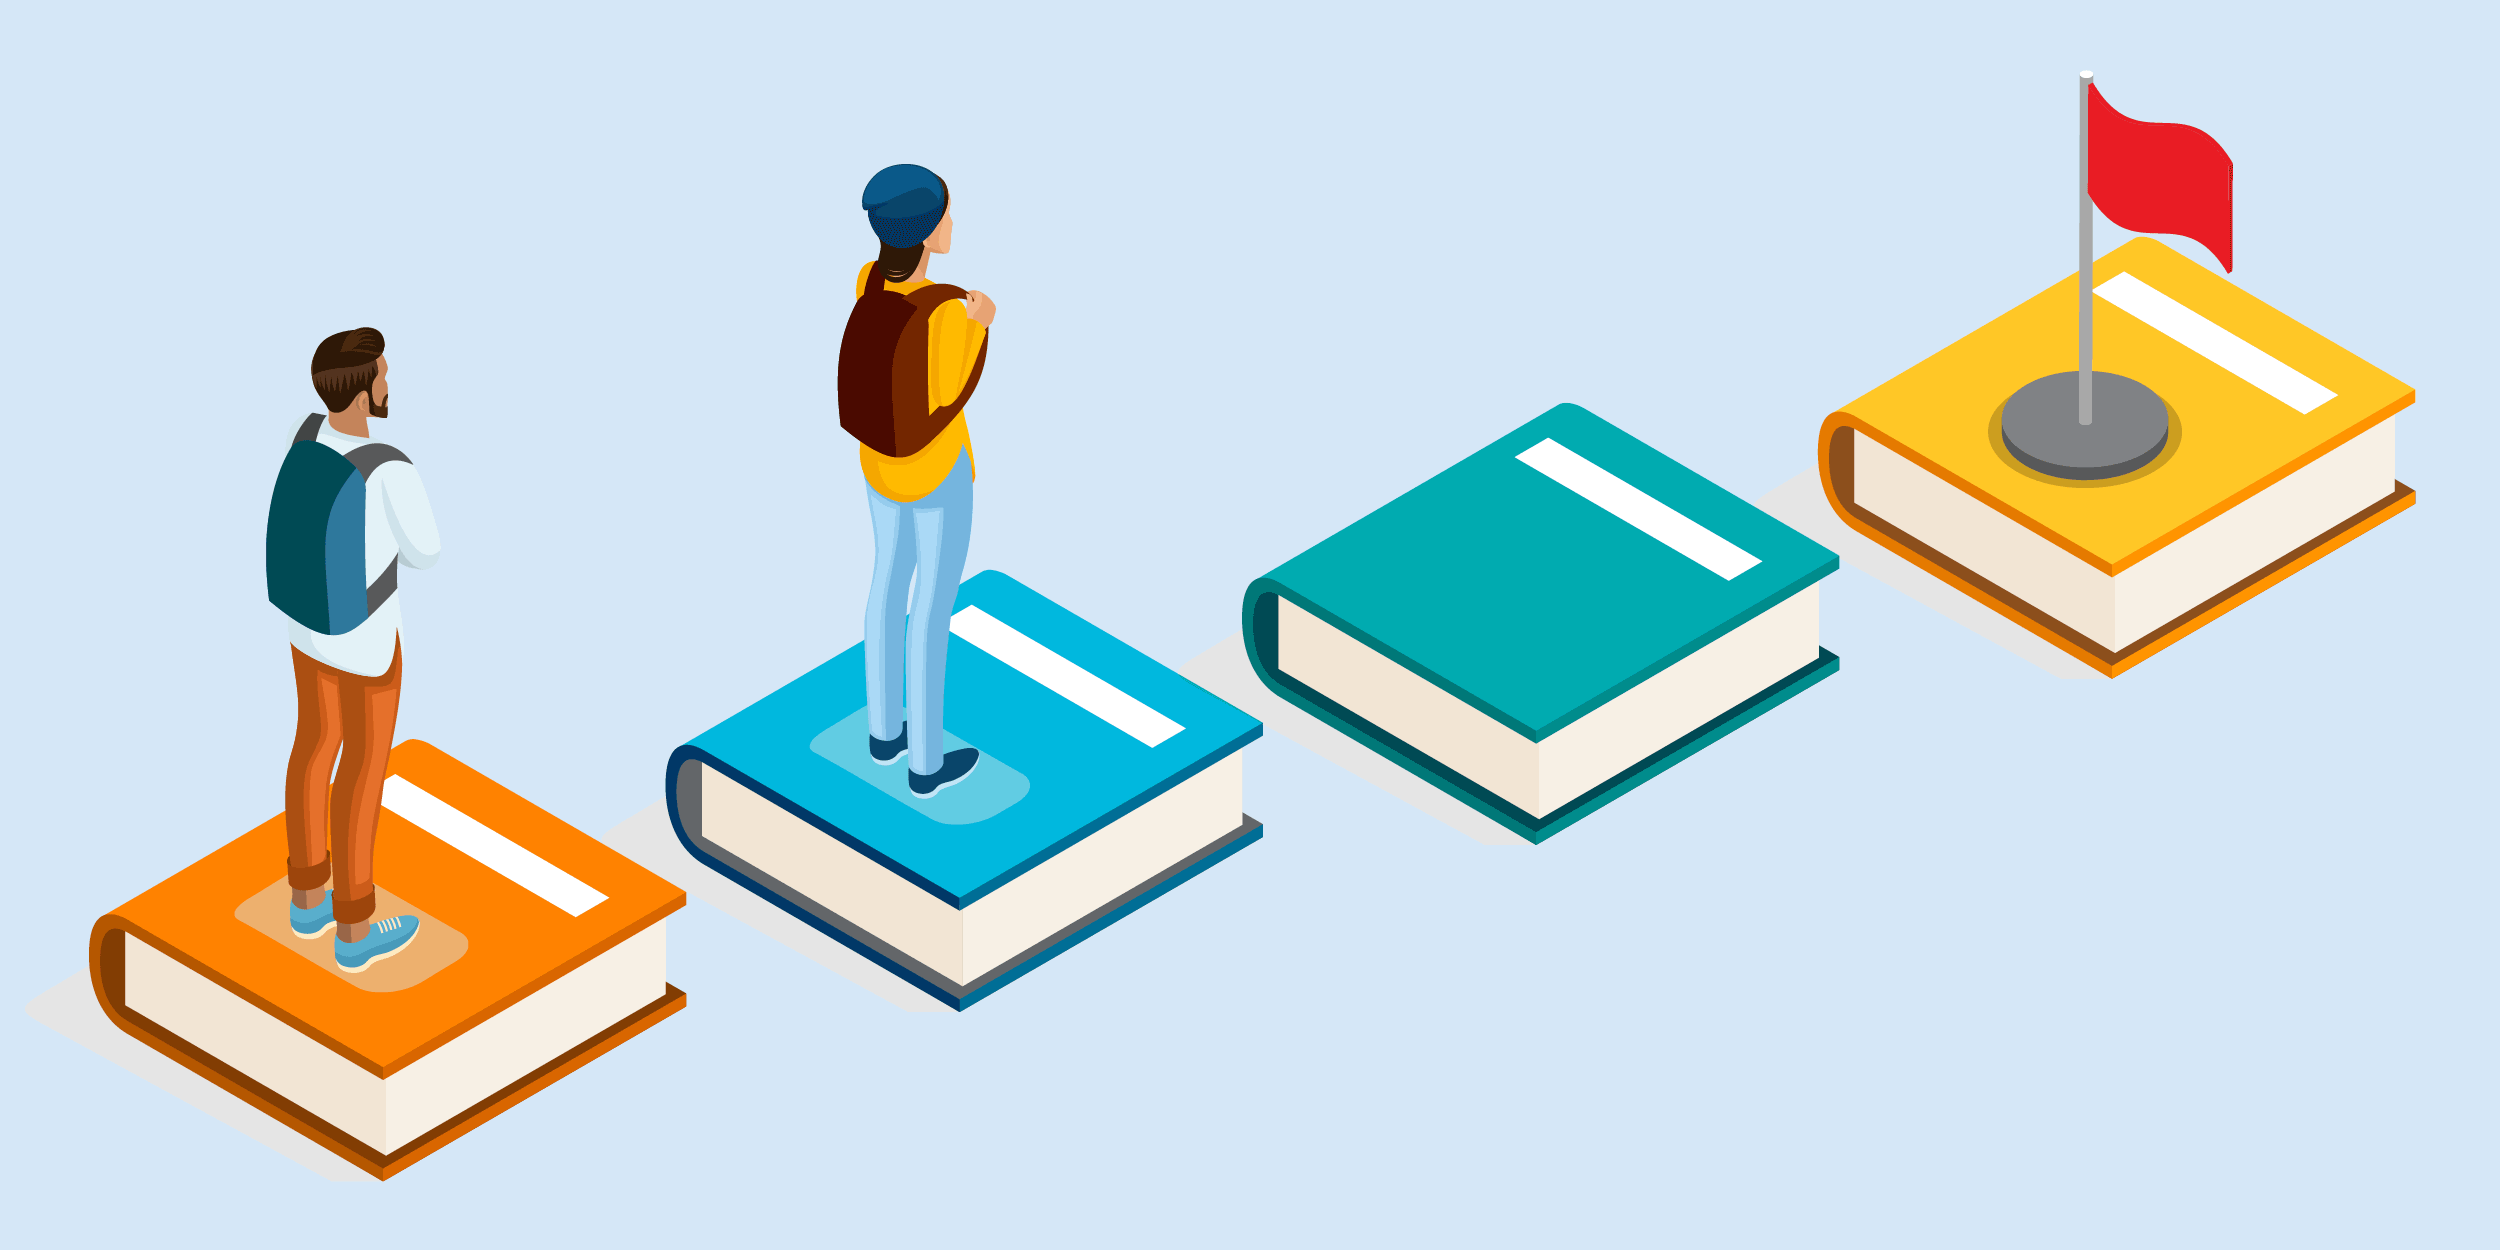 illustration of students standing on stepping stones leading them to a goal, representing how technology can help nonprofits support students